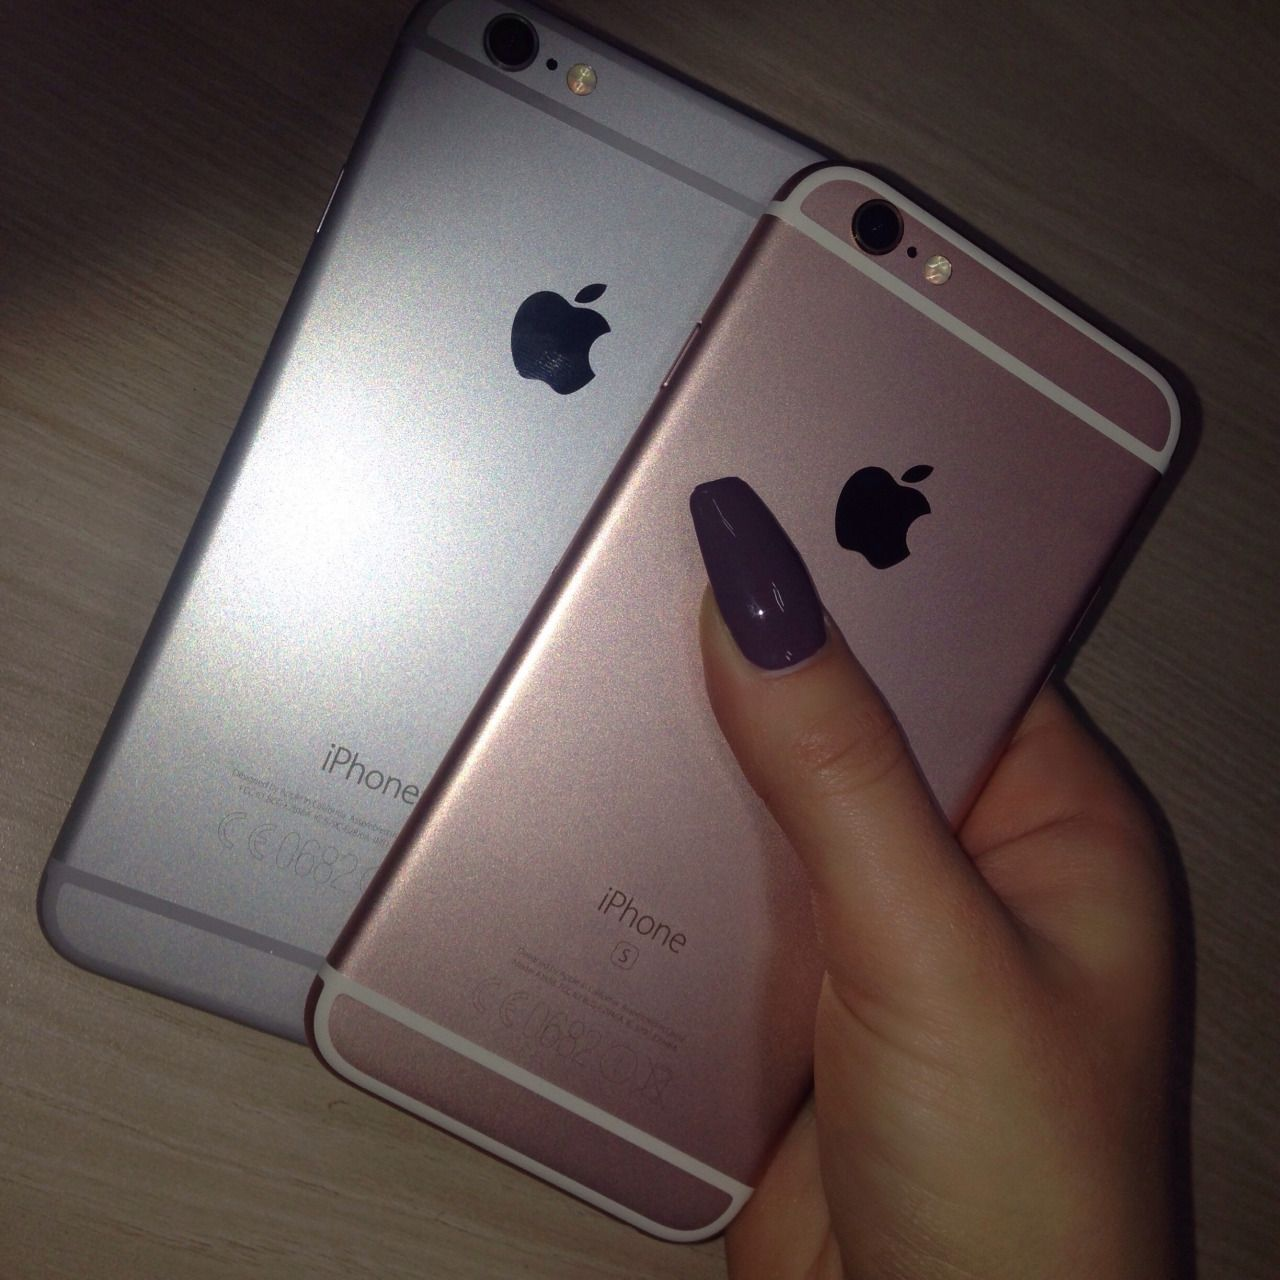 Pinterest Typicalbieber With Images Apple Smartphone Iphone Iphone Accessories